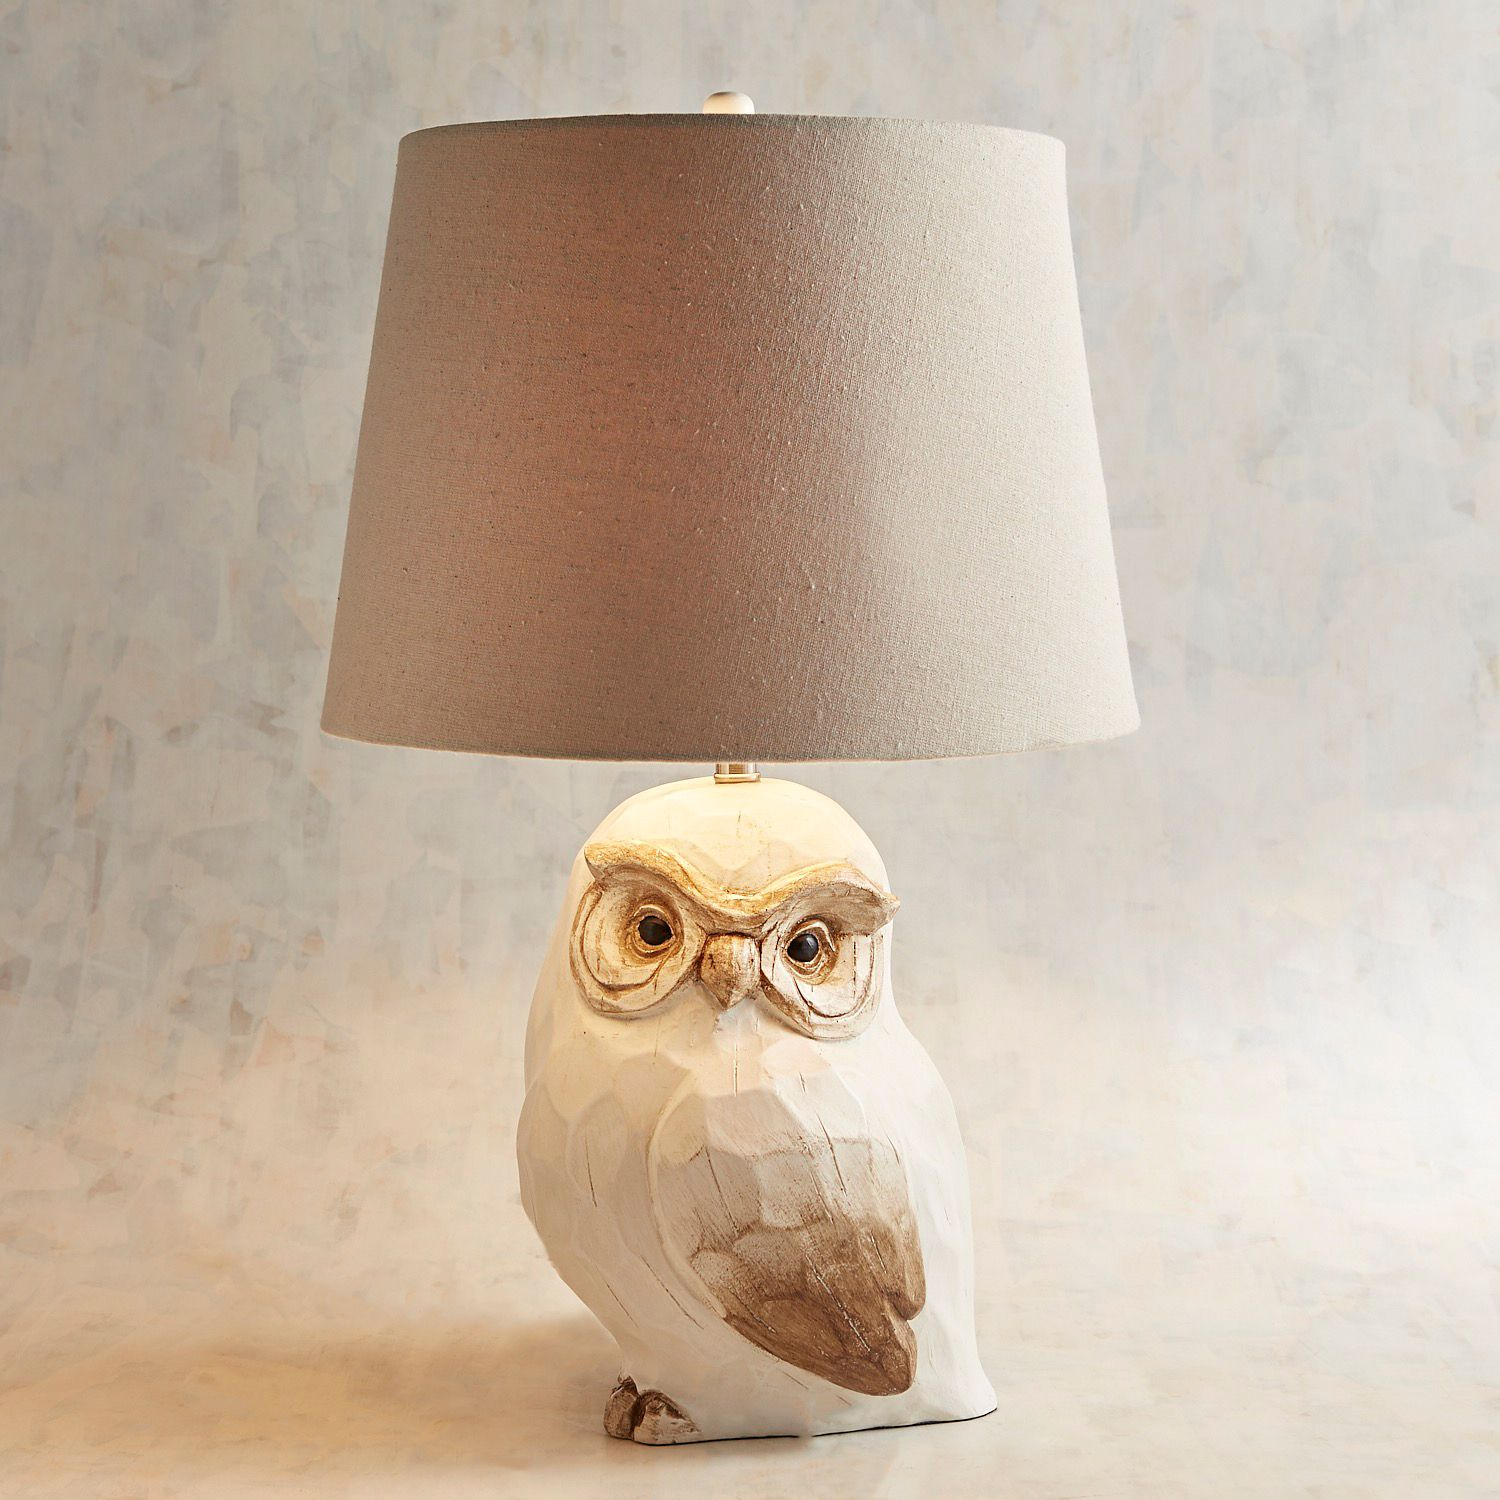 owl table lamp pier imports one accent lamps pool furniture marble pedestal coffee glass ikea storage baskets metal with drawers small square patio dining clearance silver console